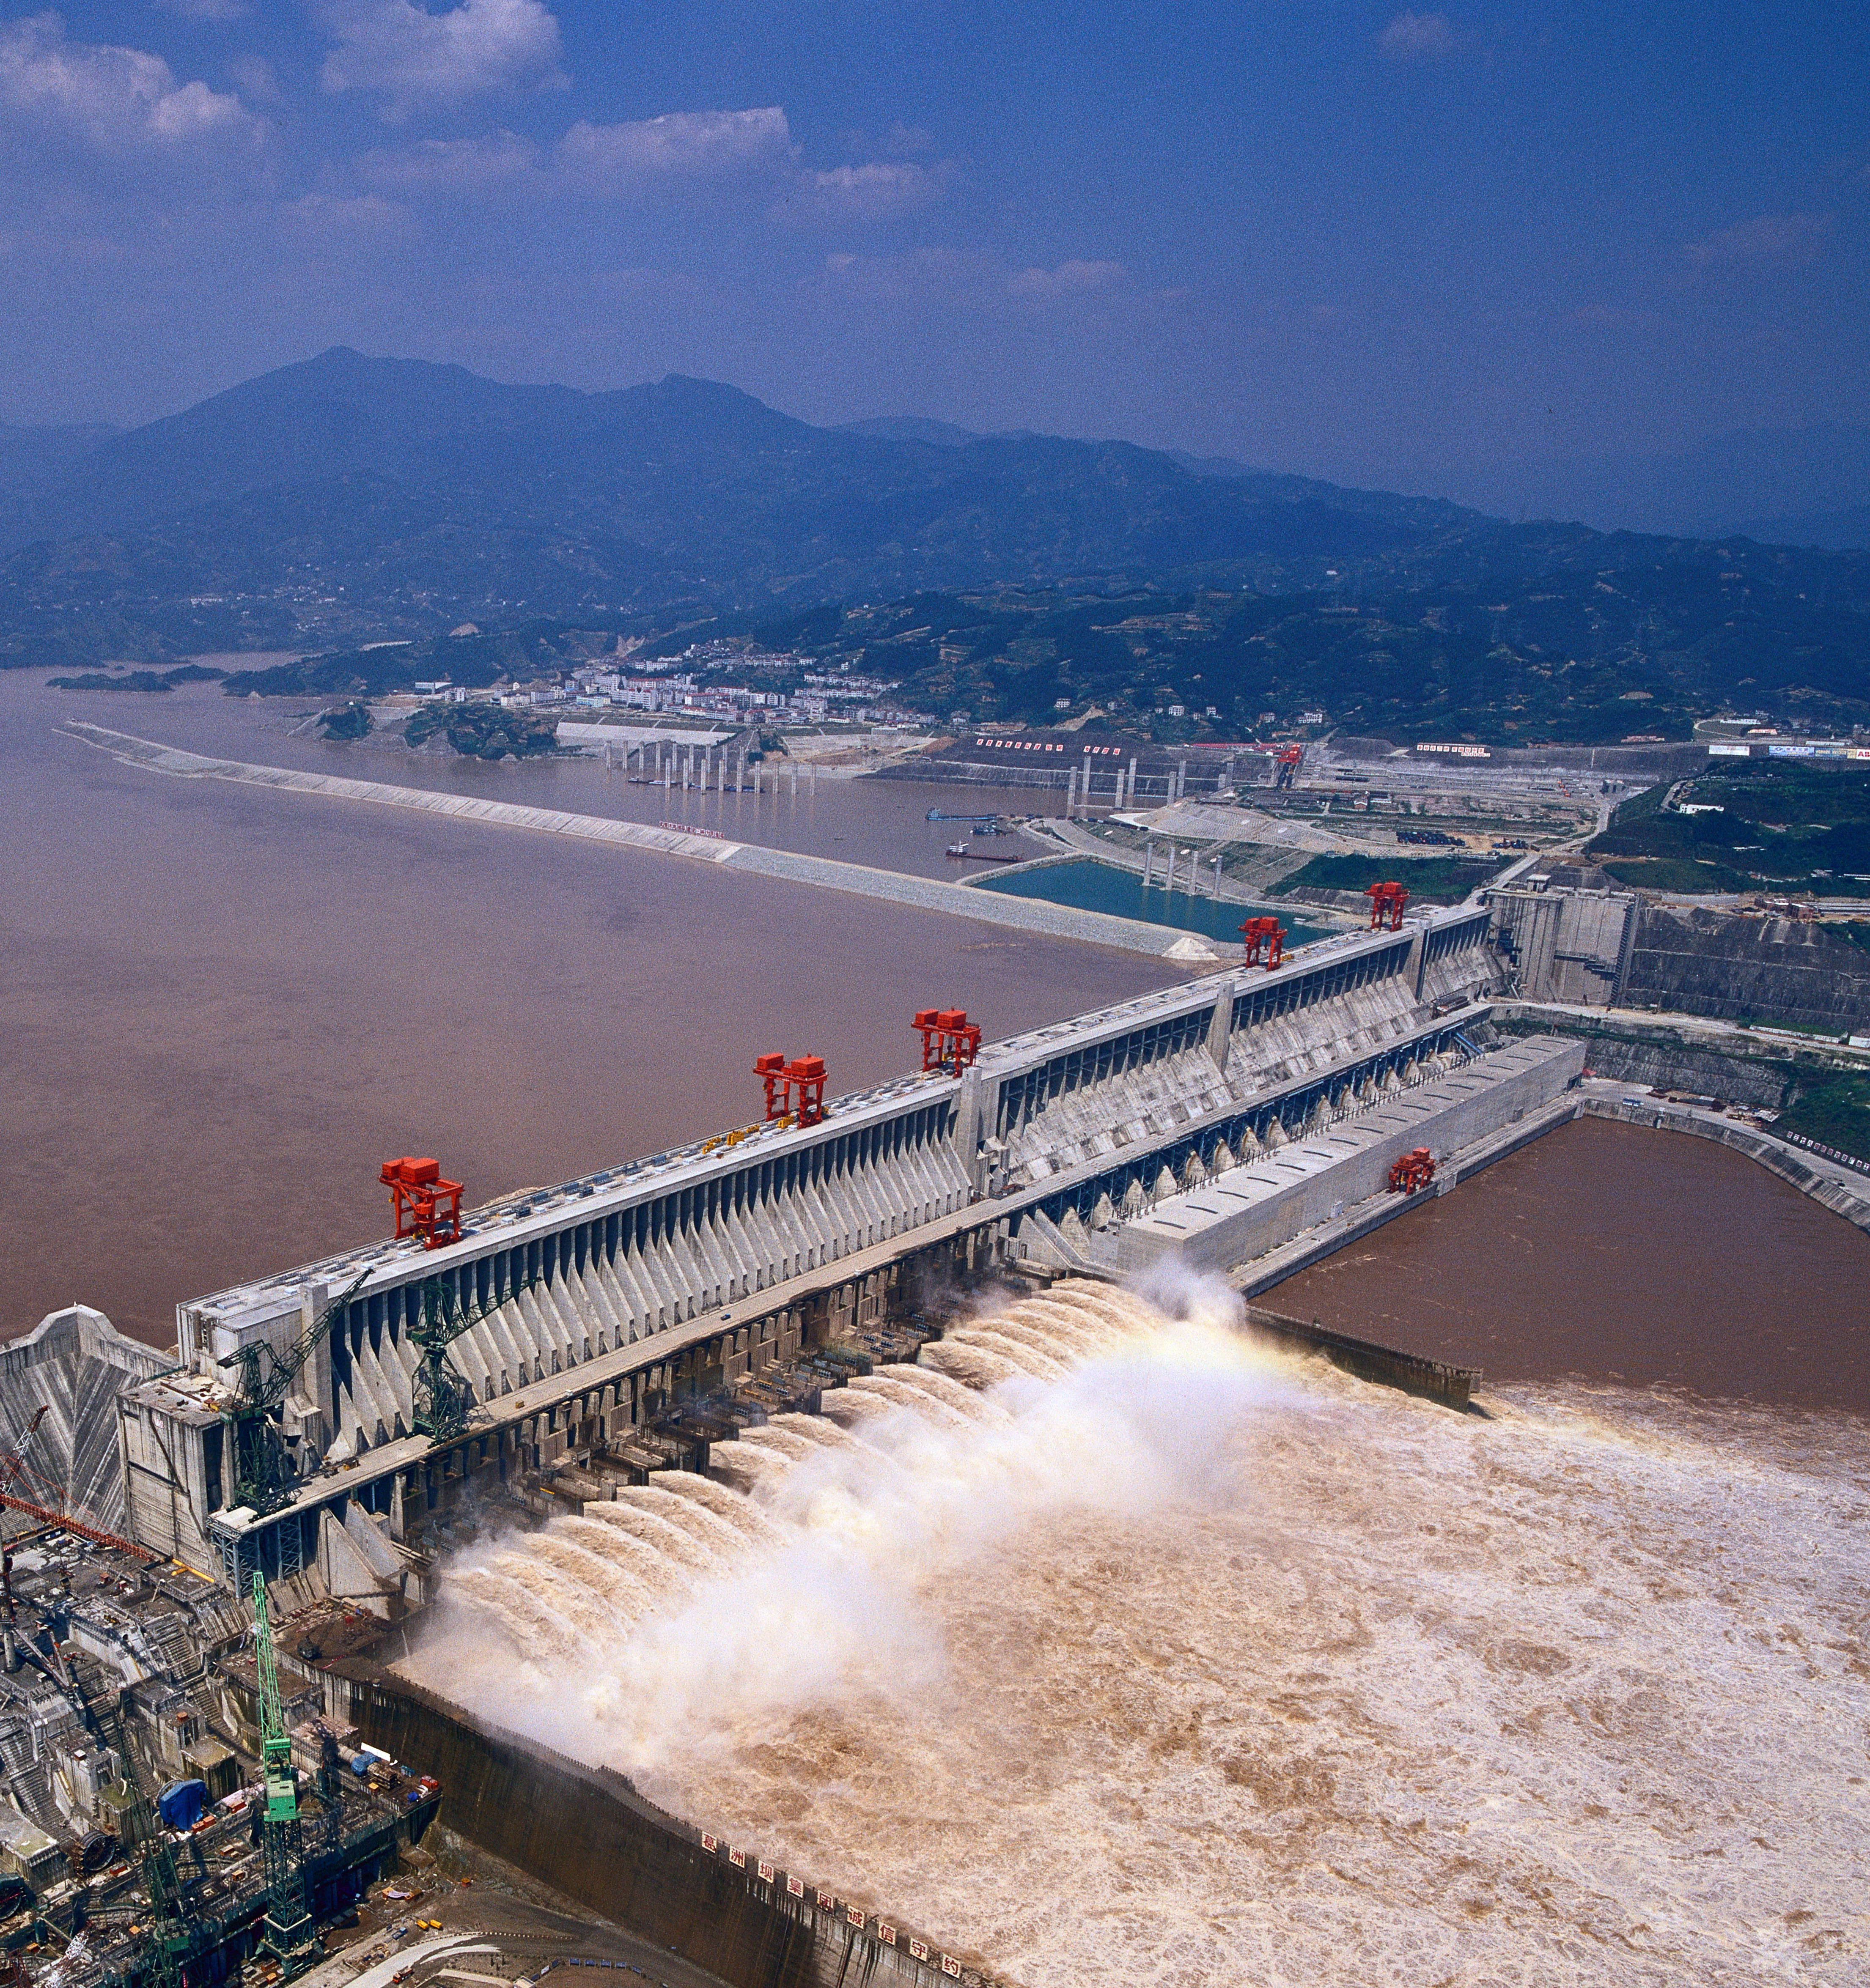 Three gorges dam project china s biggest project since the great wall - Three Gorges Dam Details About The Huge Water Conservancy Project